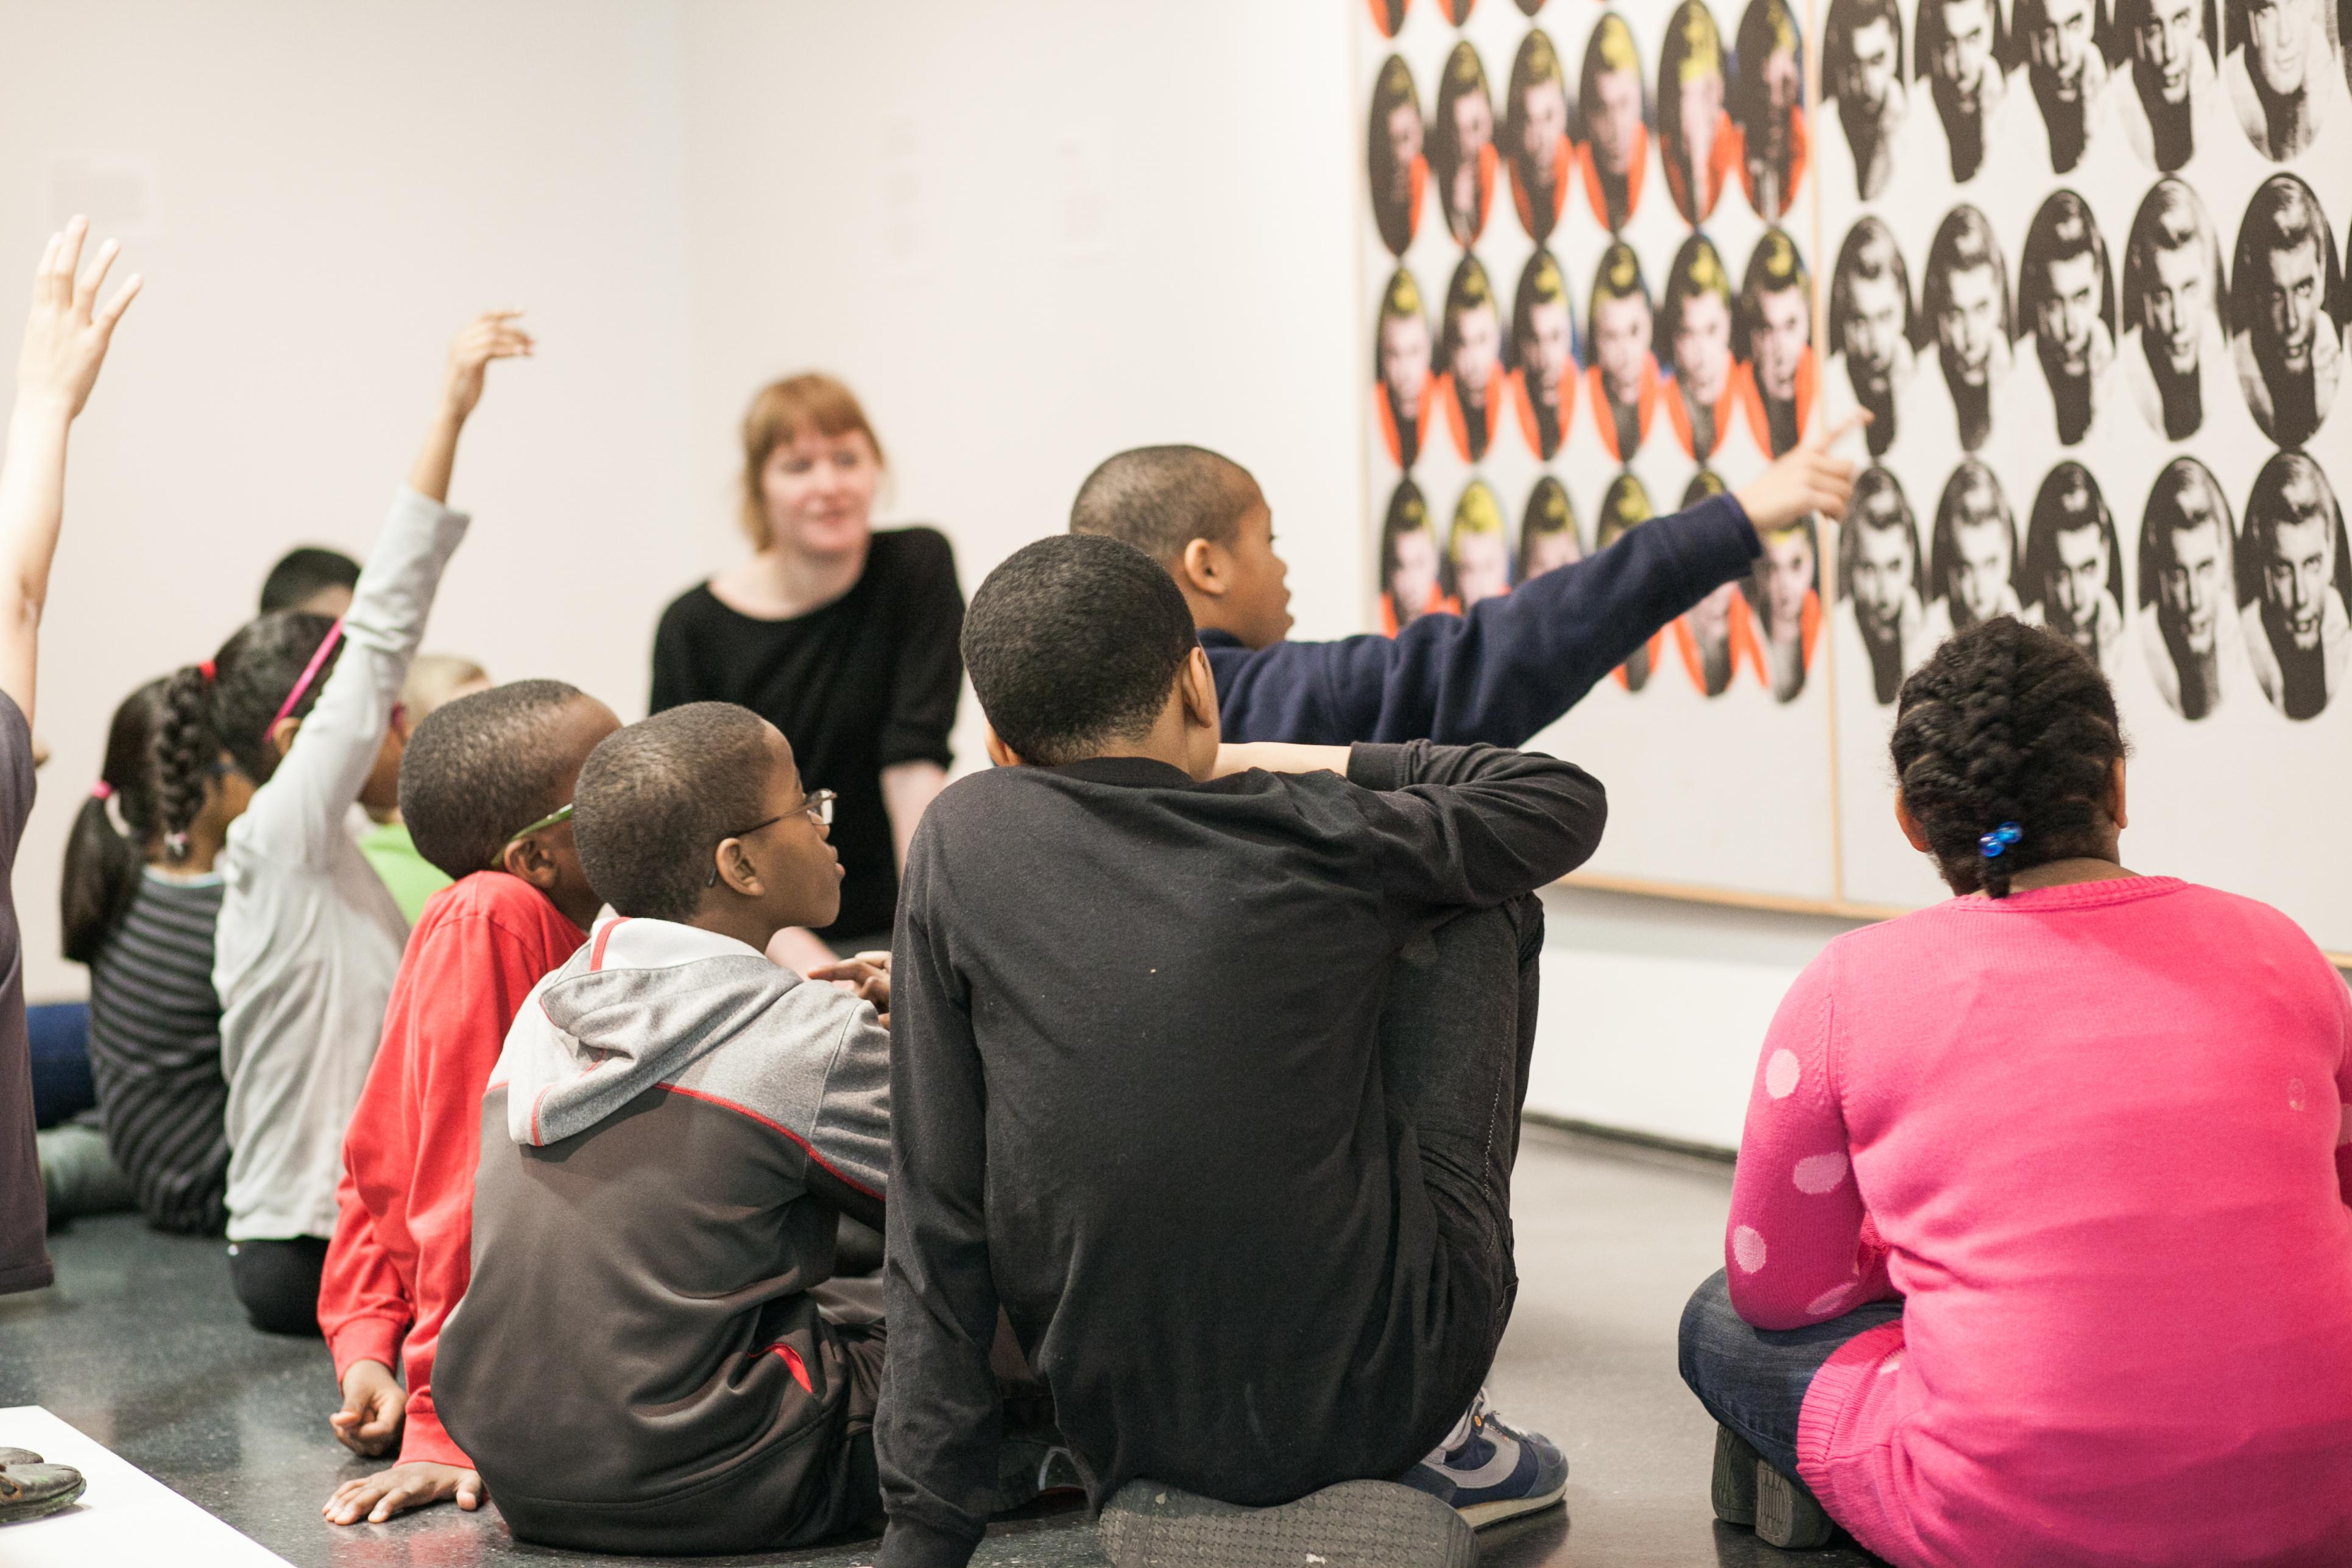 A group of kids and an artist guide look at an artwork in a gallery. Several raise their hands as if ready to answer a question.